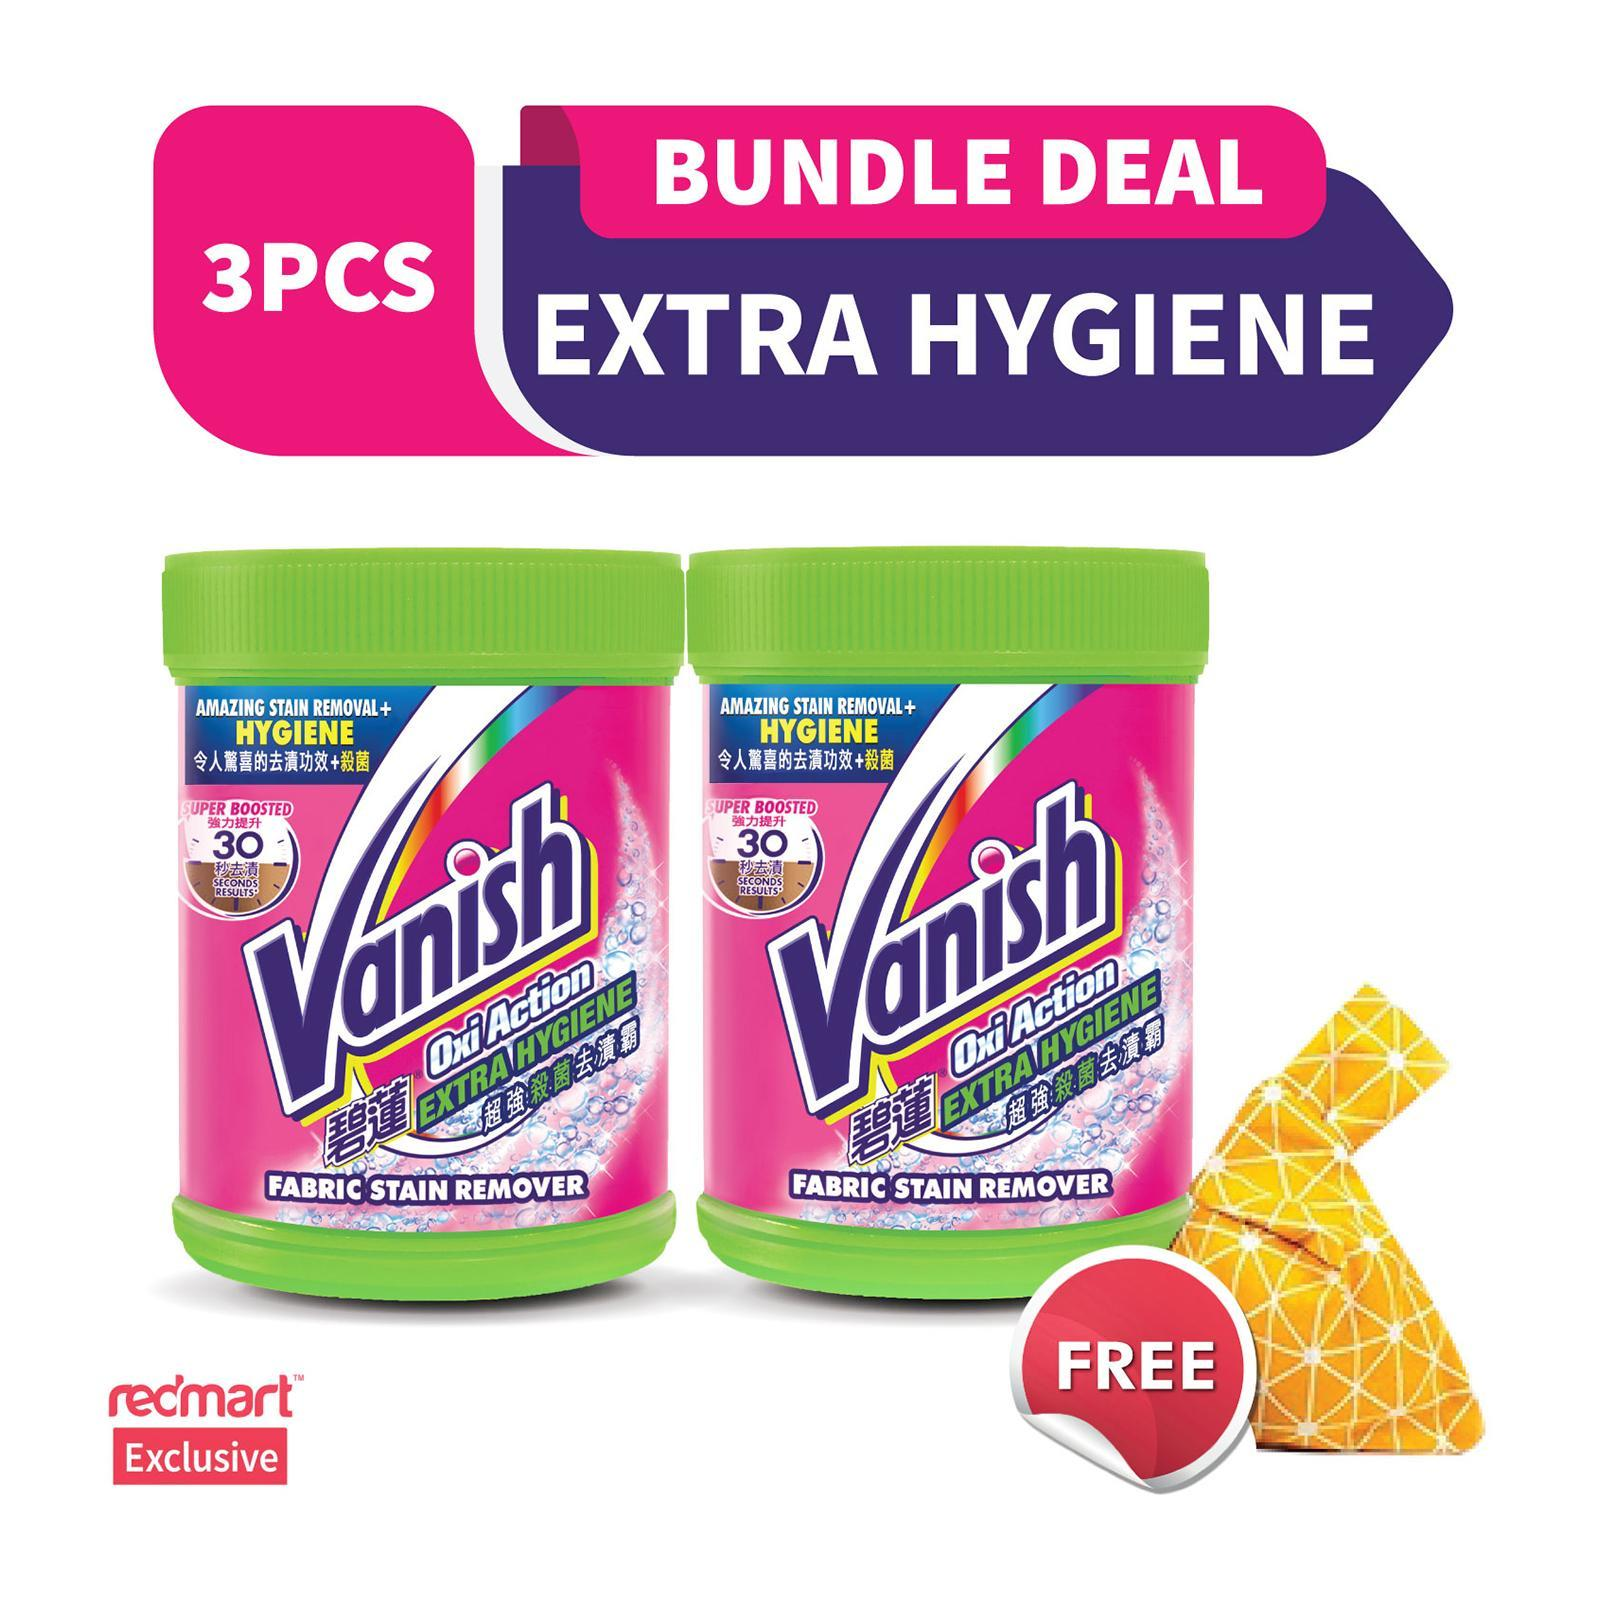 Vanish Power Oxi-Action Extra Hygiene Laundry Fabric Stain Remover 1.6KG And Free Vanish Sachet 120G Bundle Pack